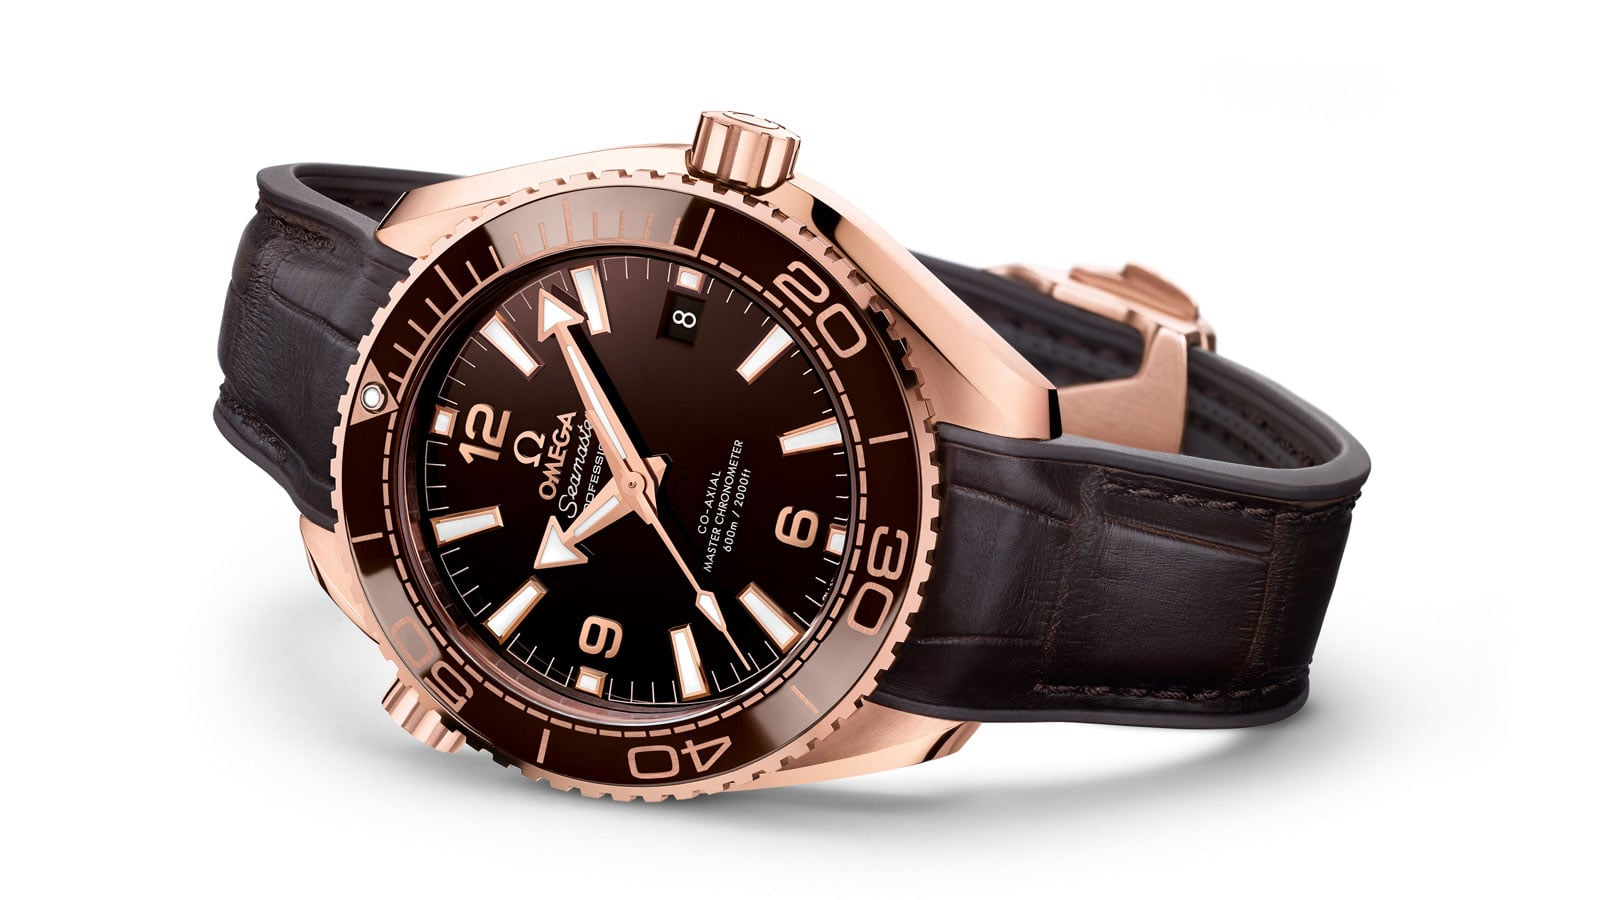 Omega Seamaster Planet Ocean 600 M with Sedna gold case and brown leather strap